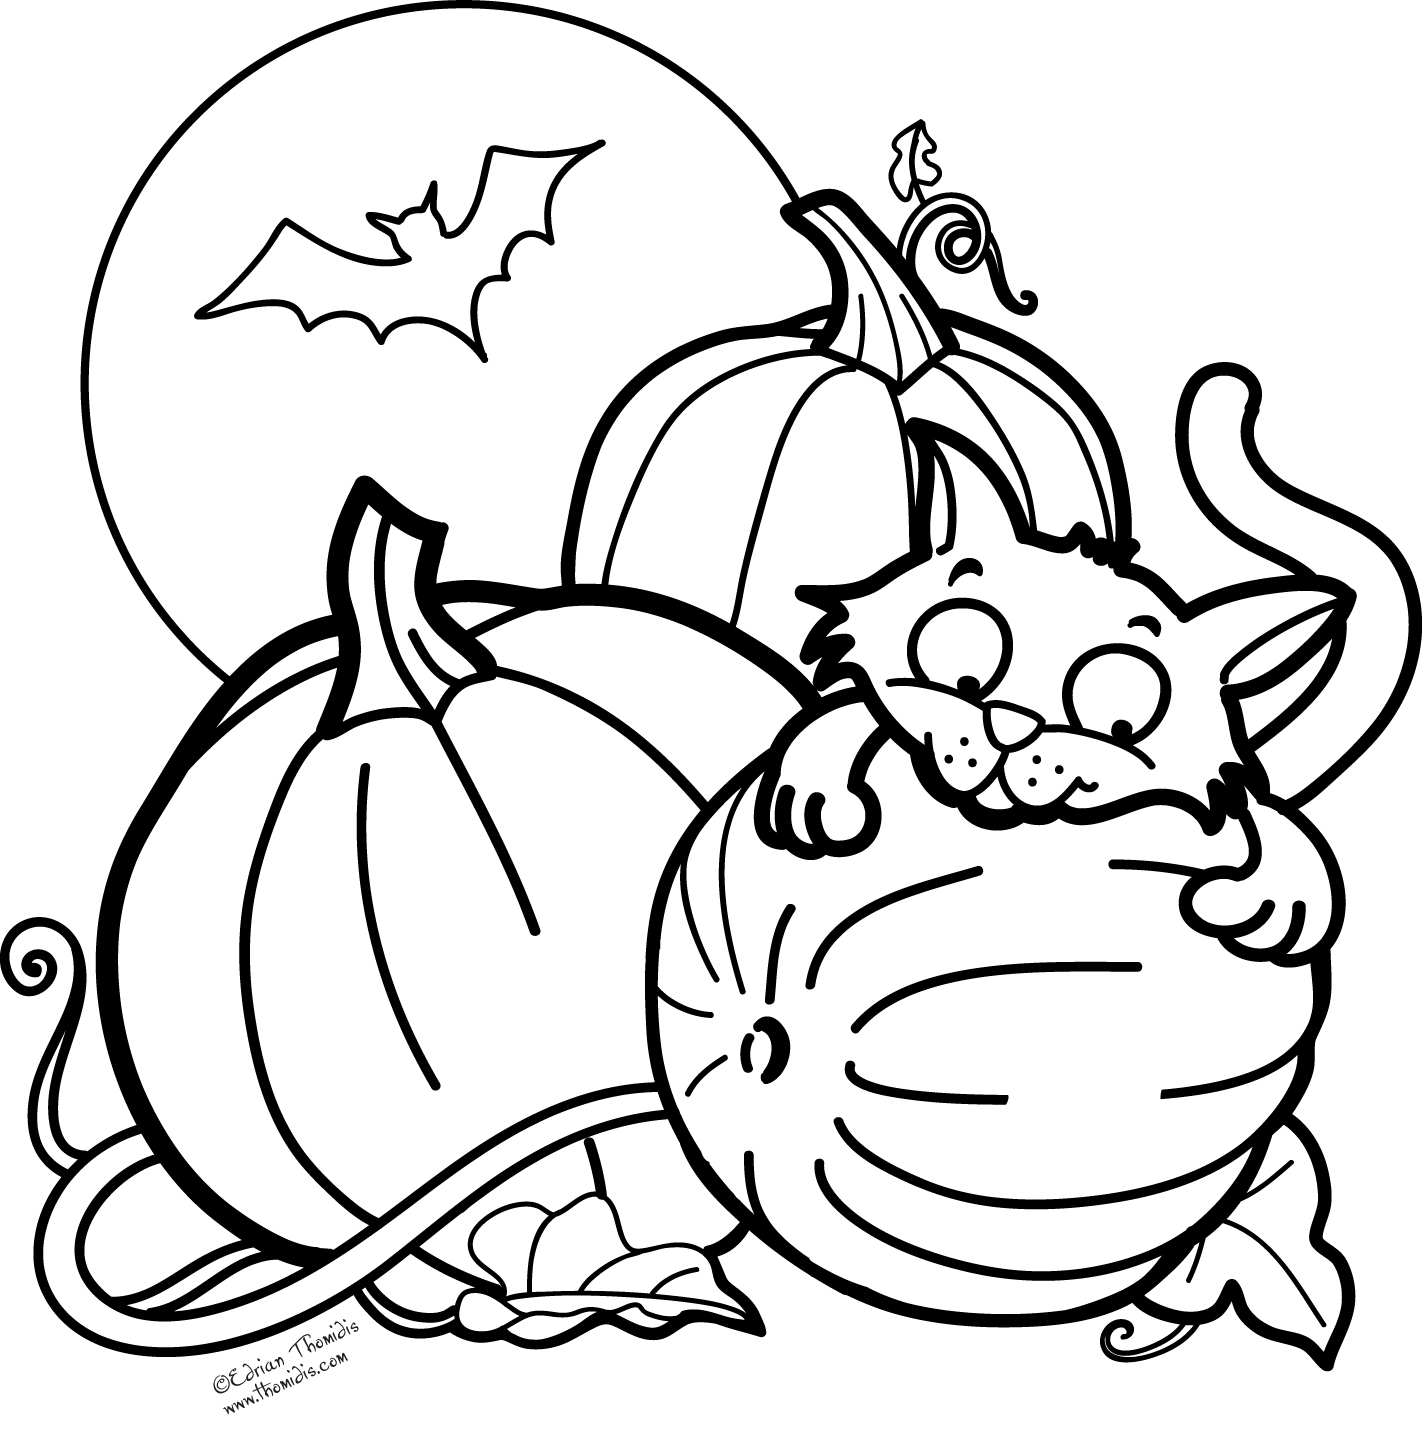 halloween pumpkins coloring pages - photo #34